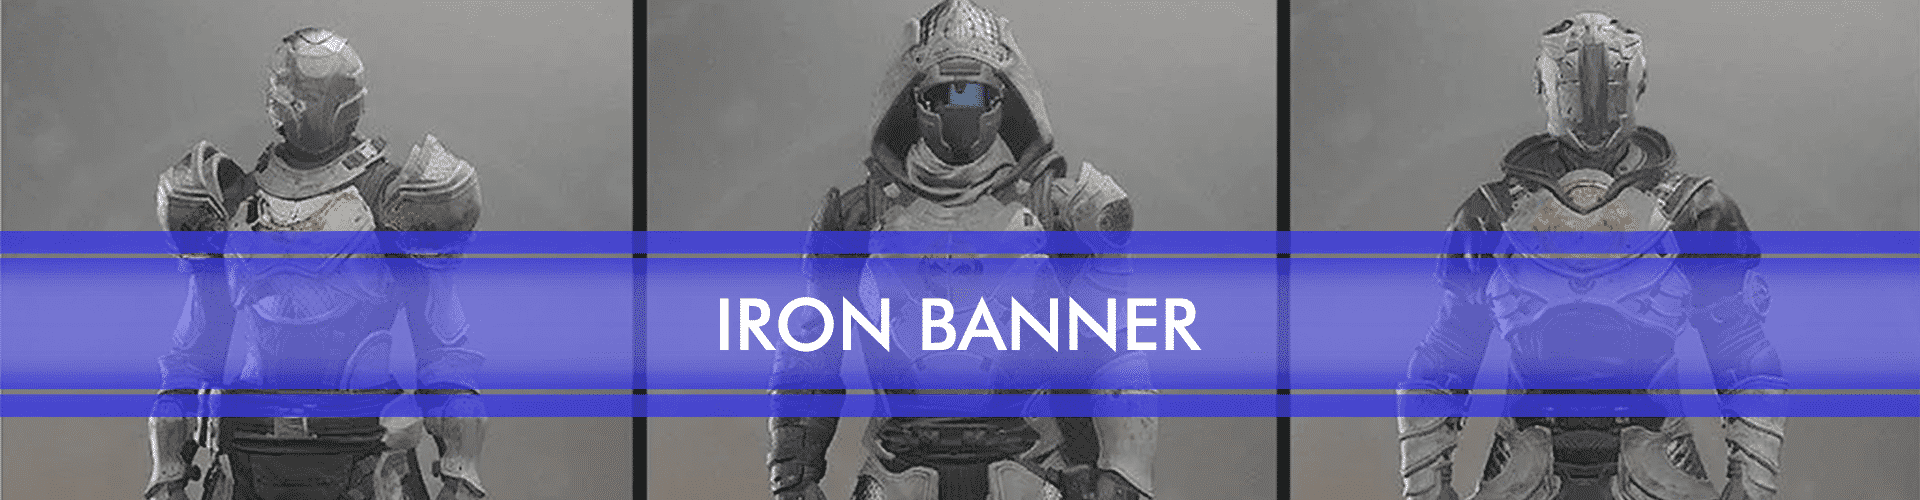 iron banner post image